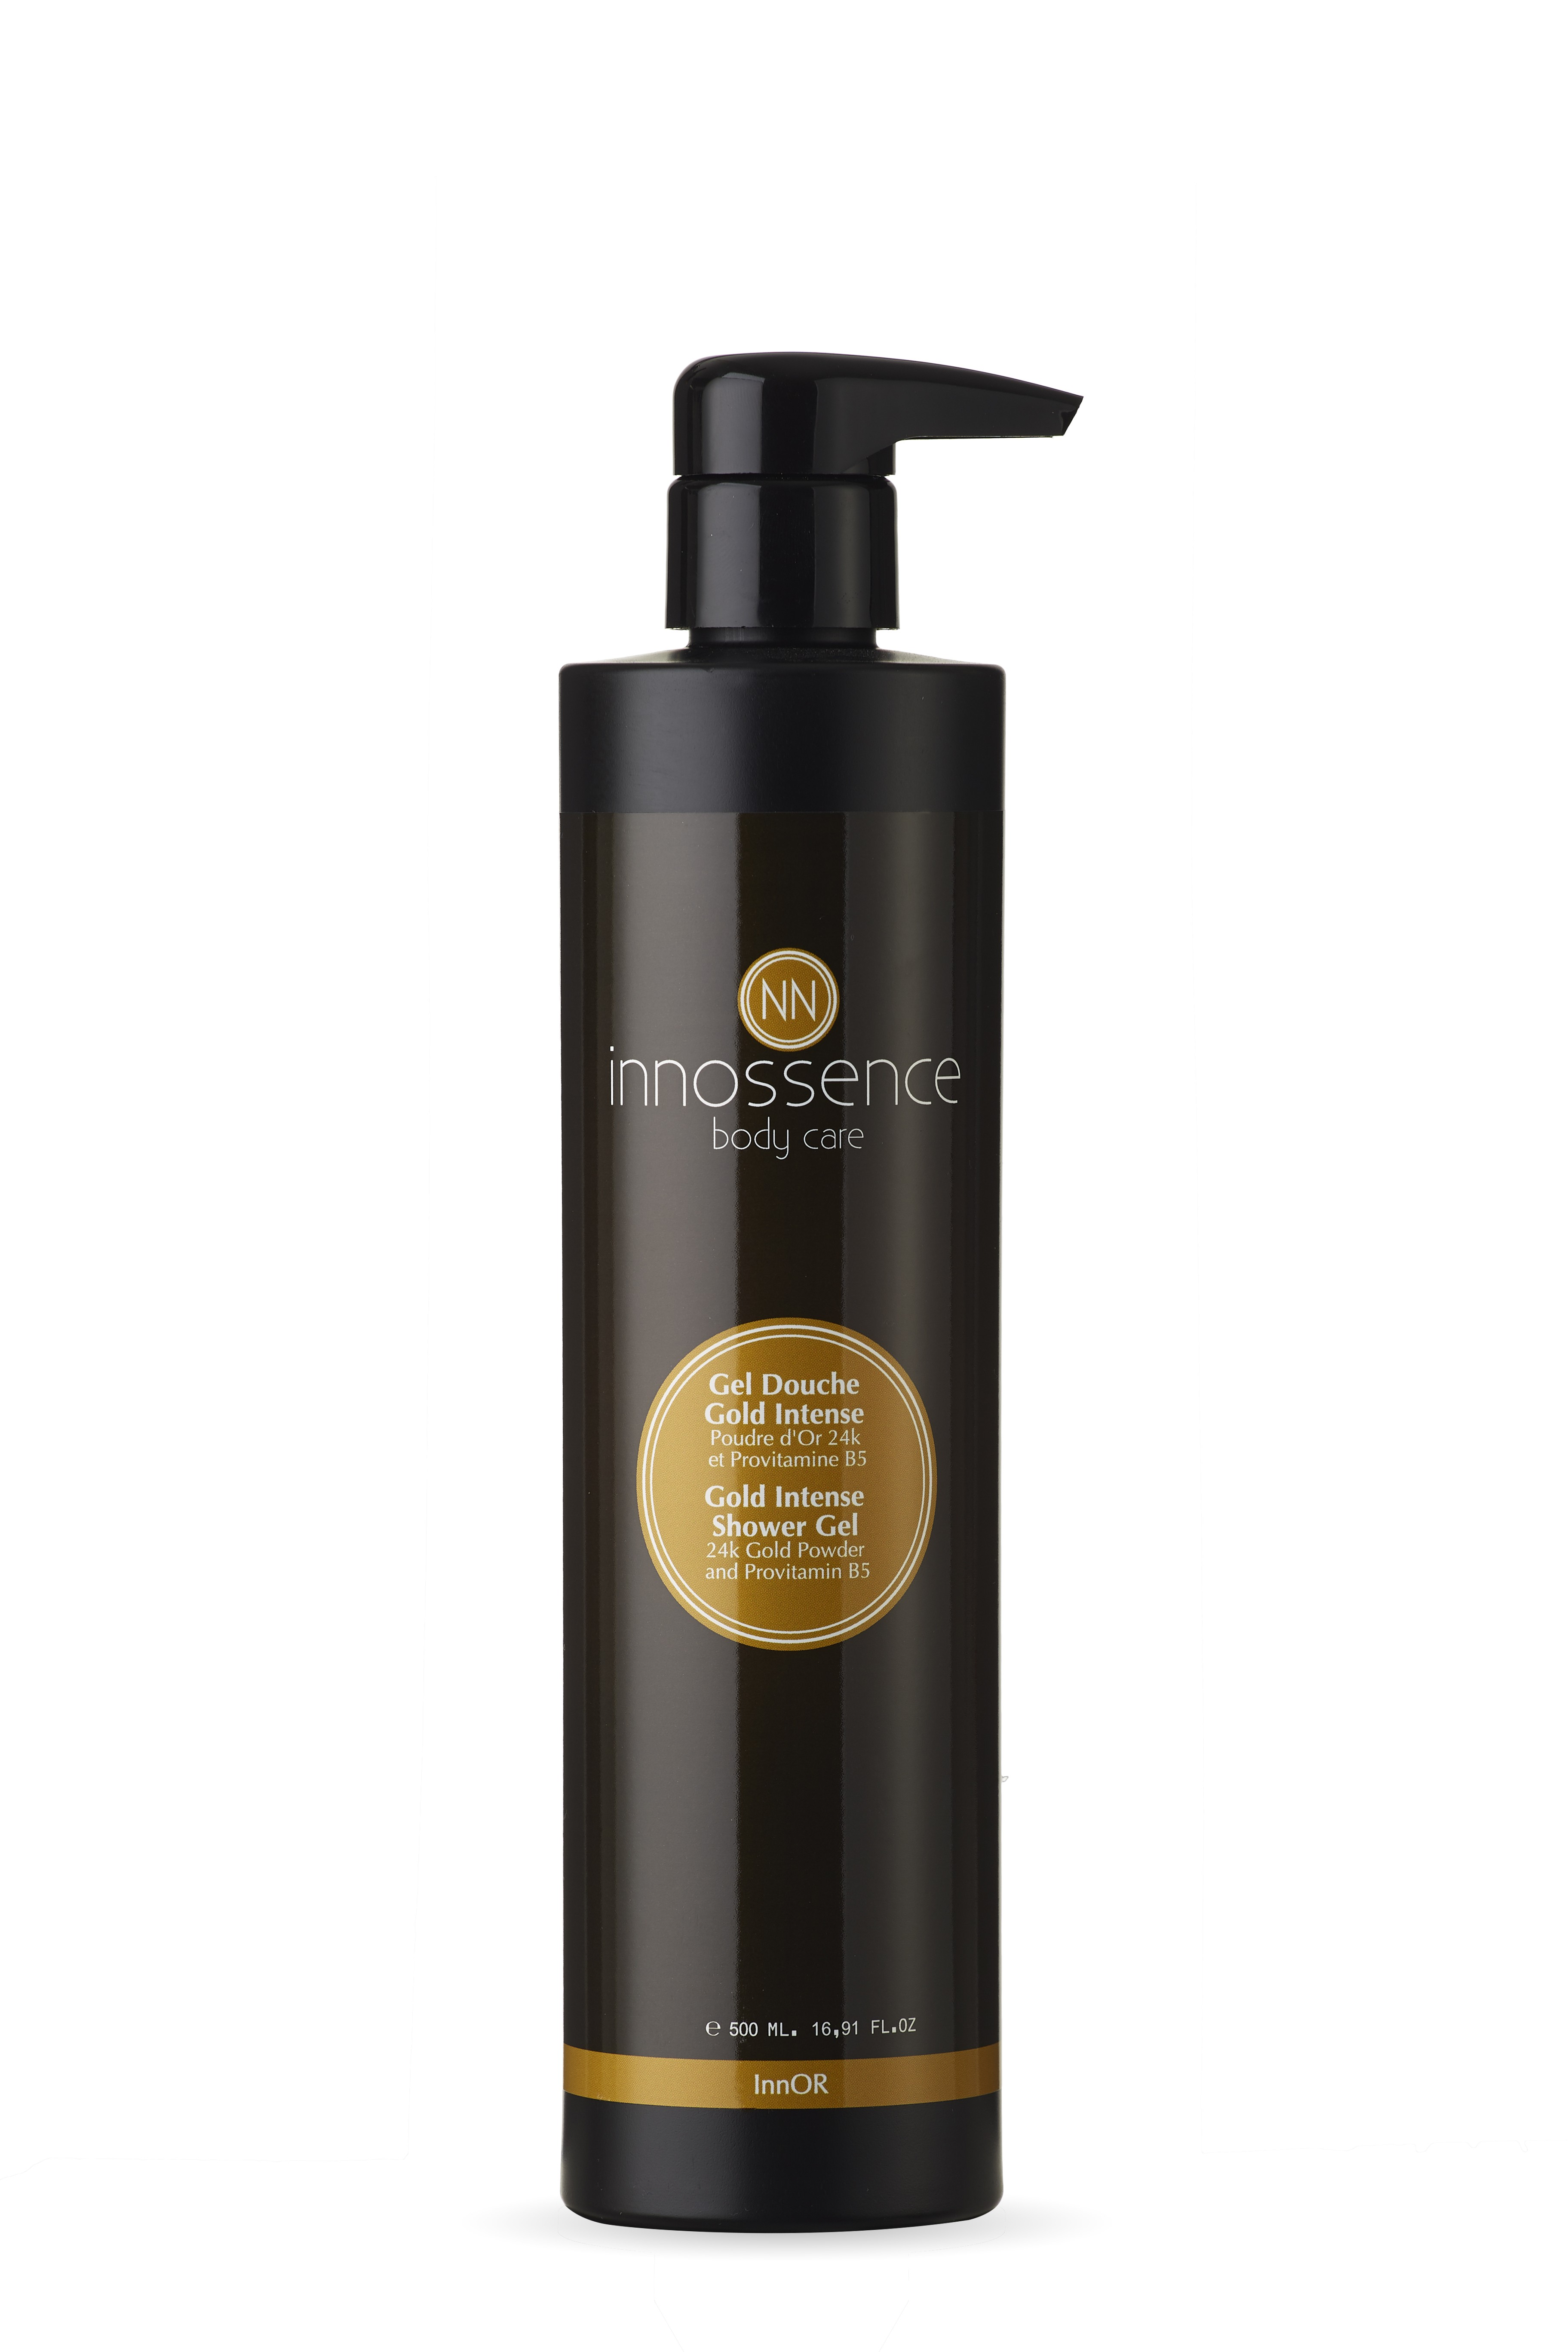 Gel douche gold intense - 500ml